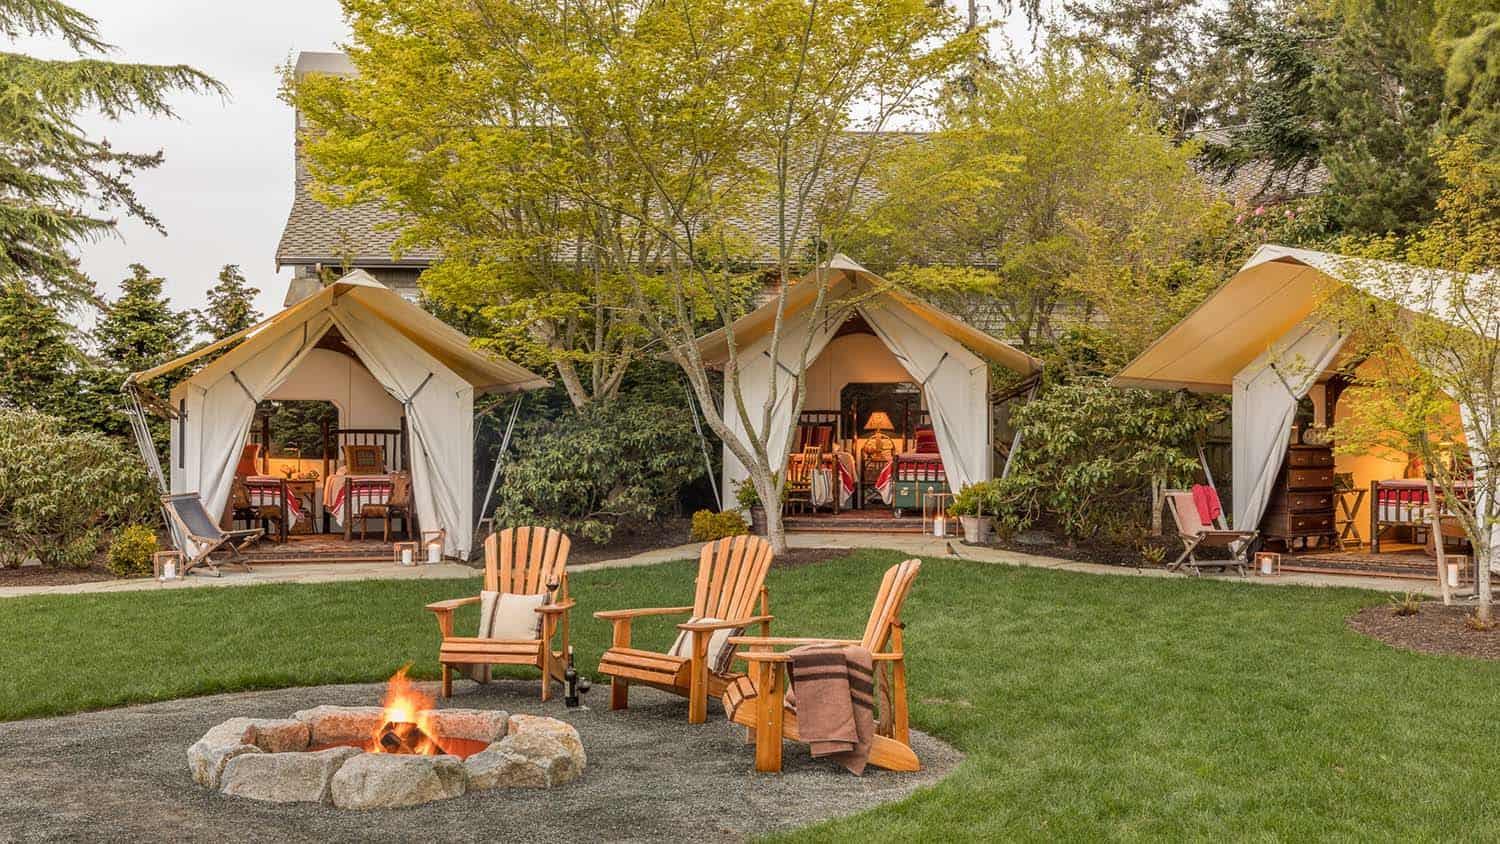 rustic-retreat-glamping-tent-fire-pit